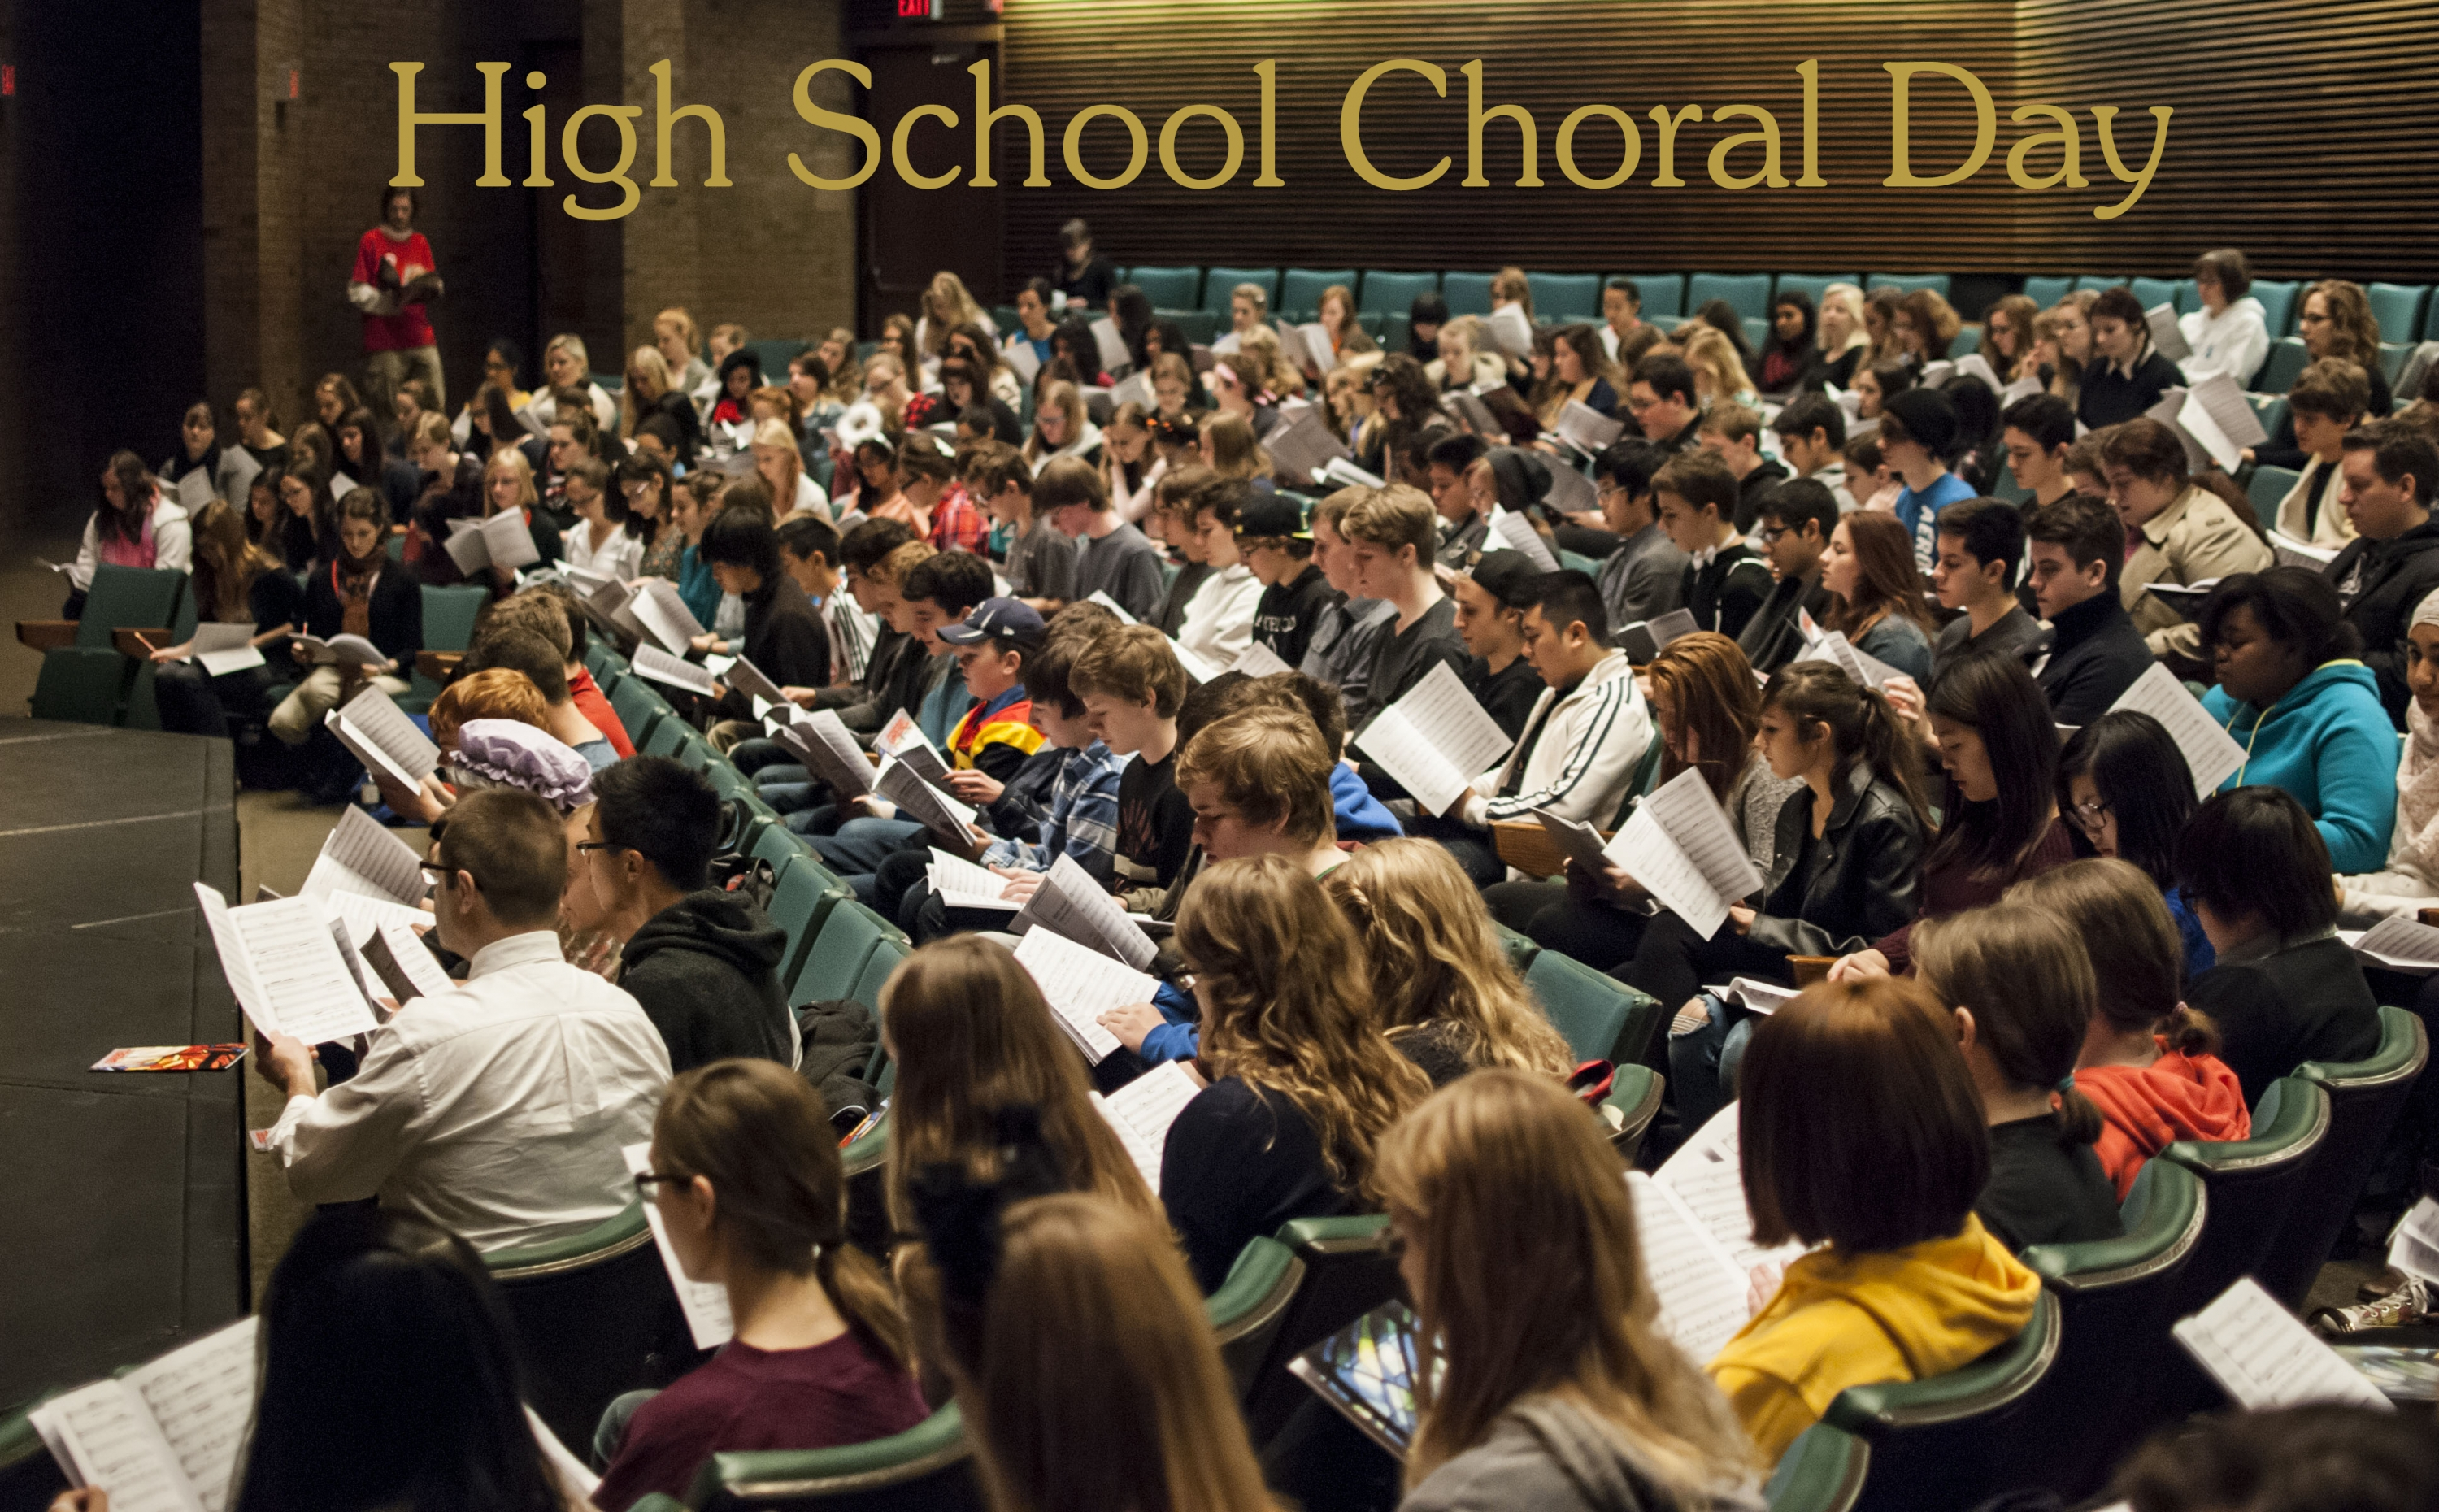 2014 Choral Day at Grebel